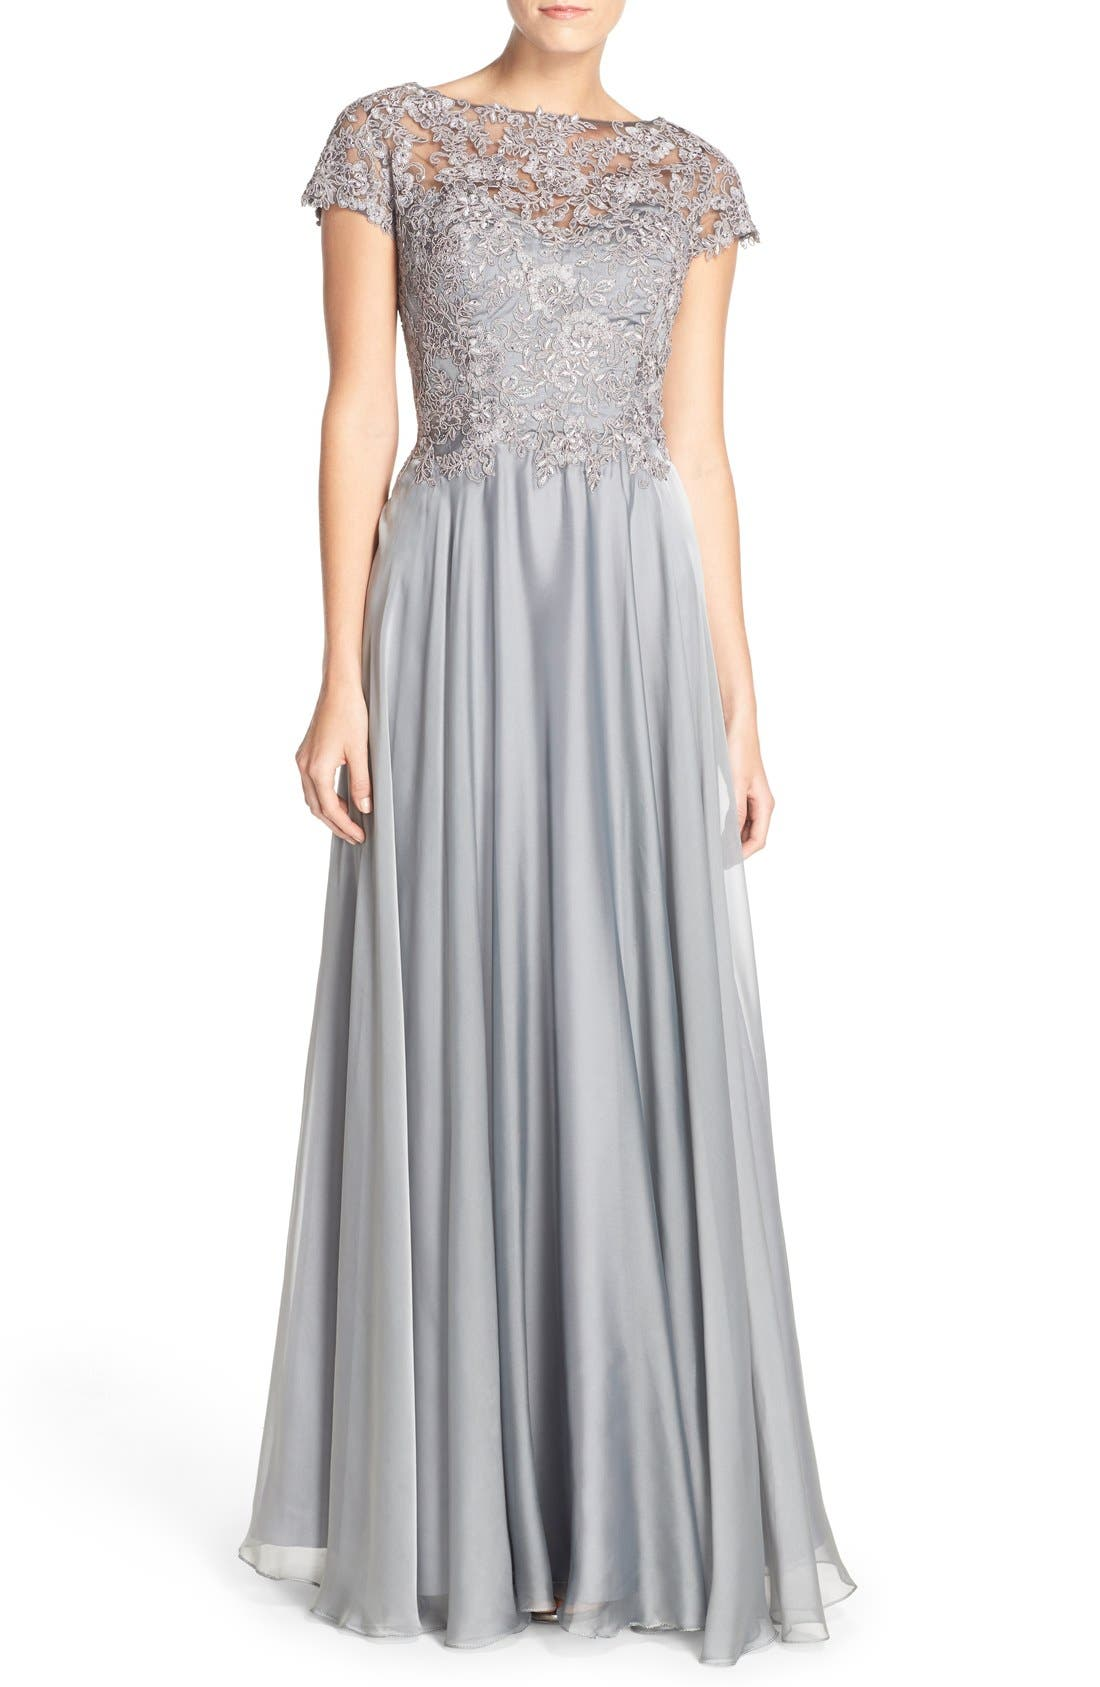 1930s Evening Dresses | Old Hollywood Dress Womens La Femme Embellished Lace  Satin Ballgown Size 20 similar to 20W-22W - Grey $450.00 AT vintagedancer.com